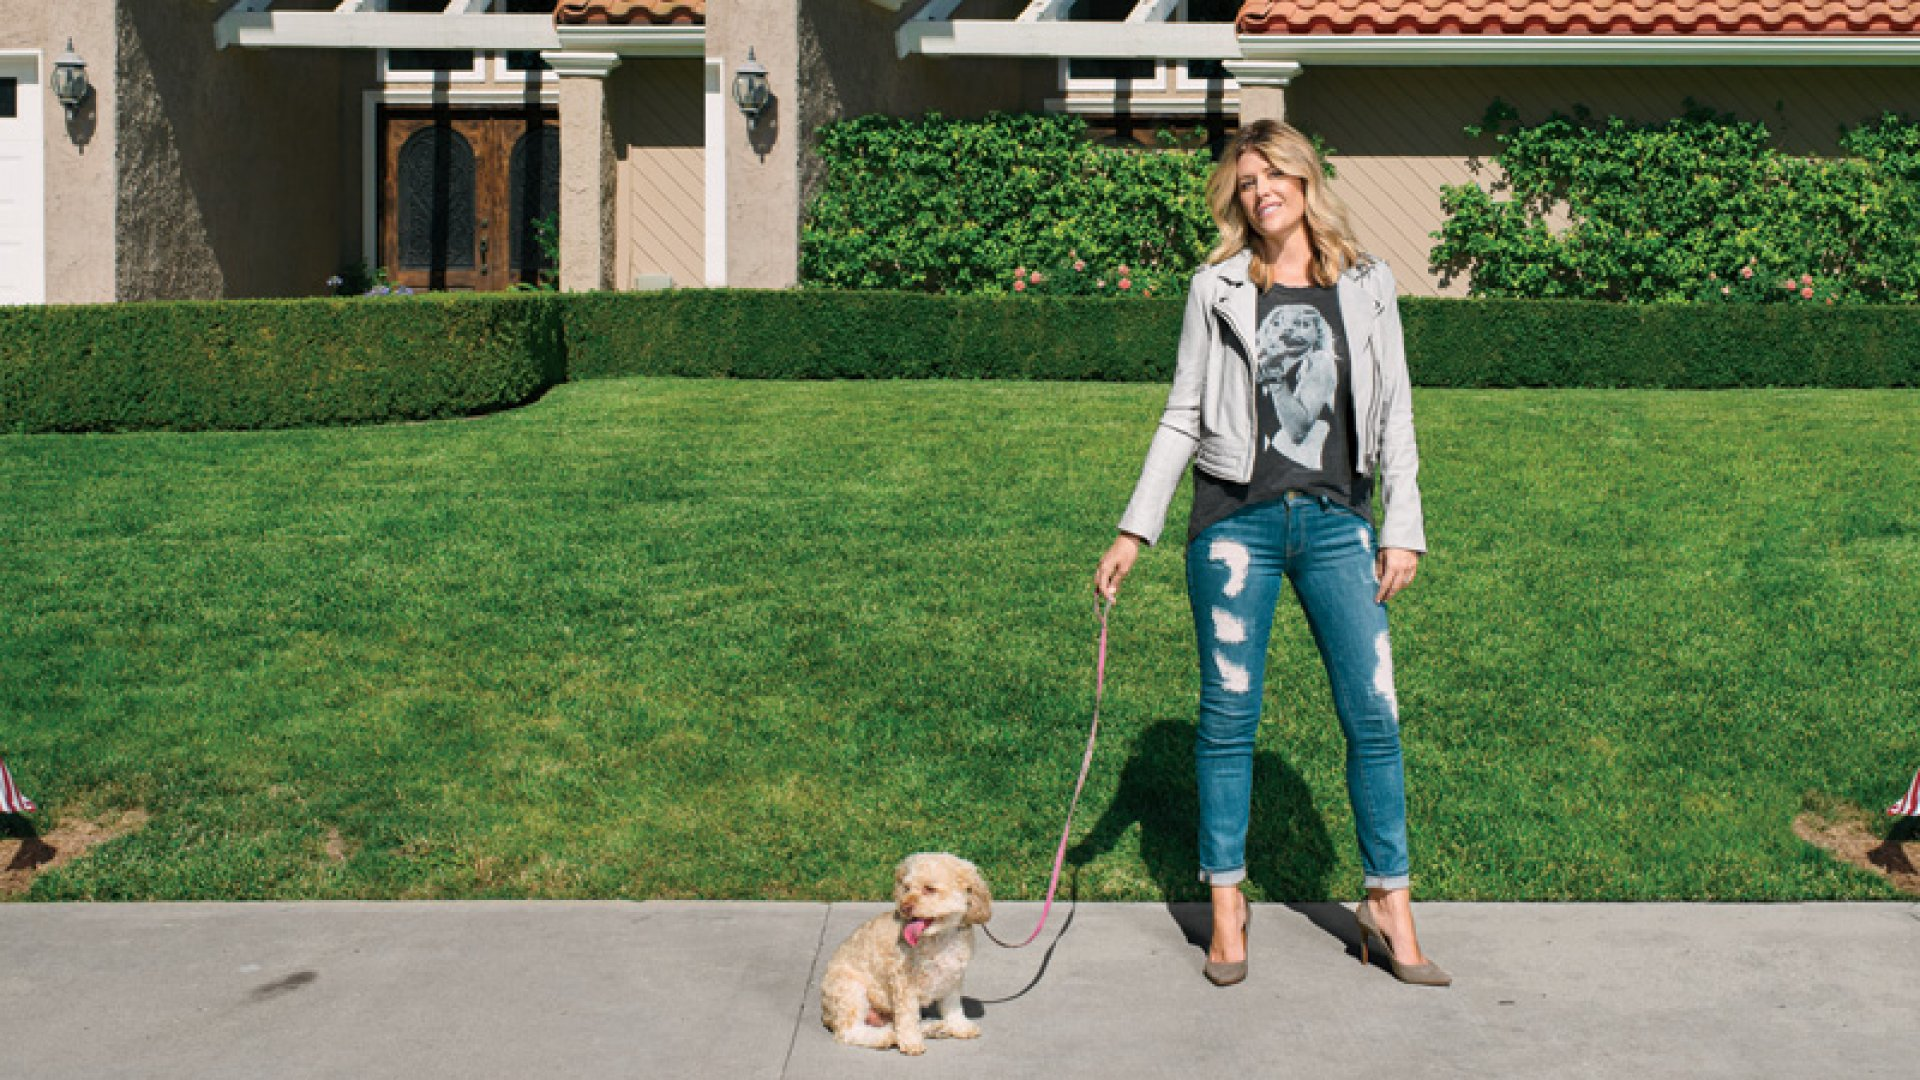 From Single Mom to CEO of an $11 Million Company